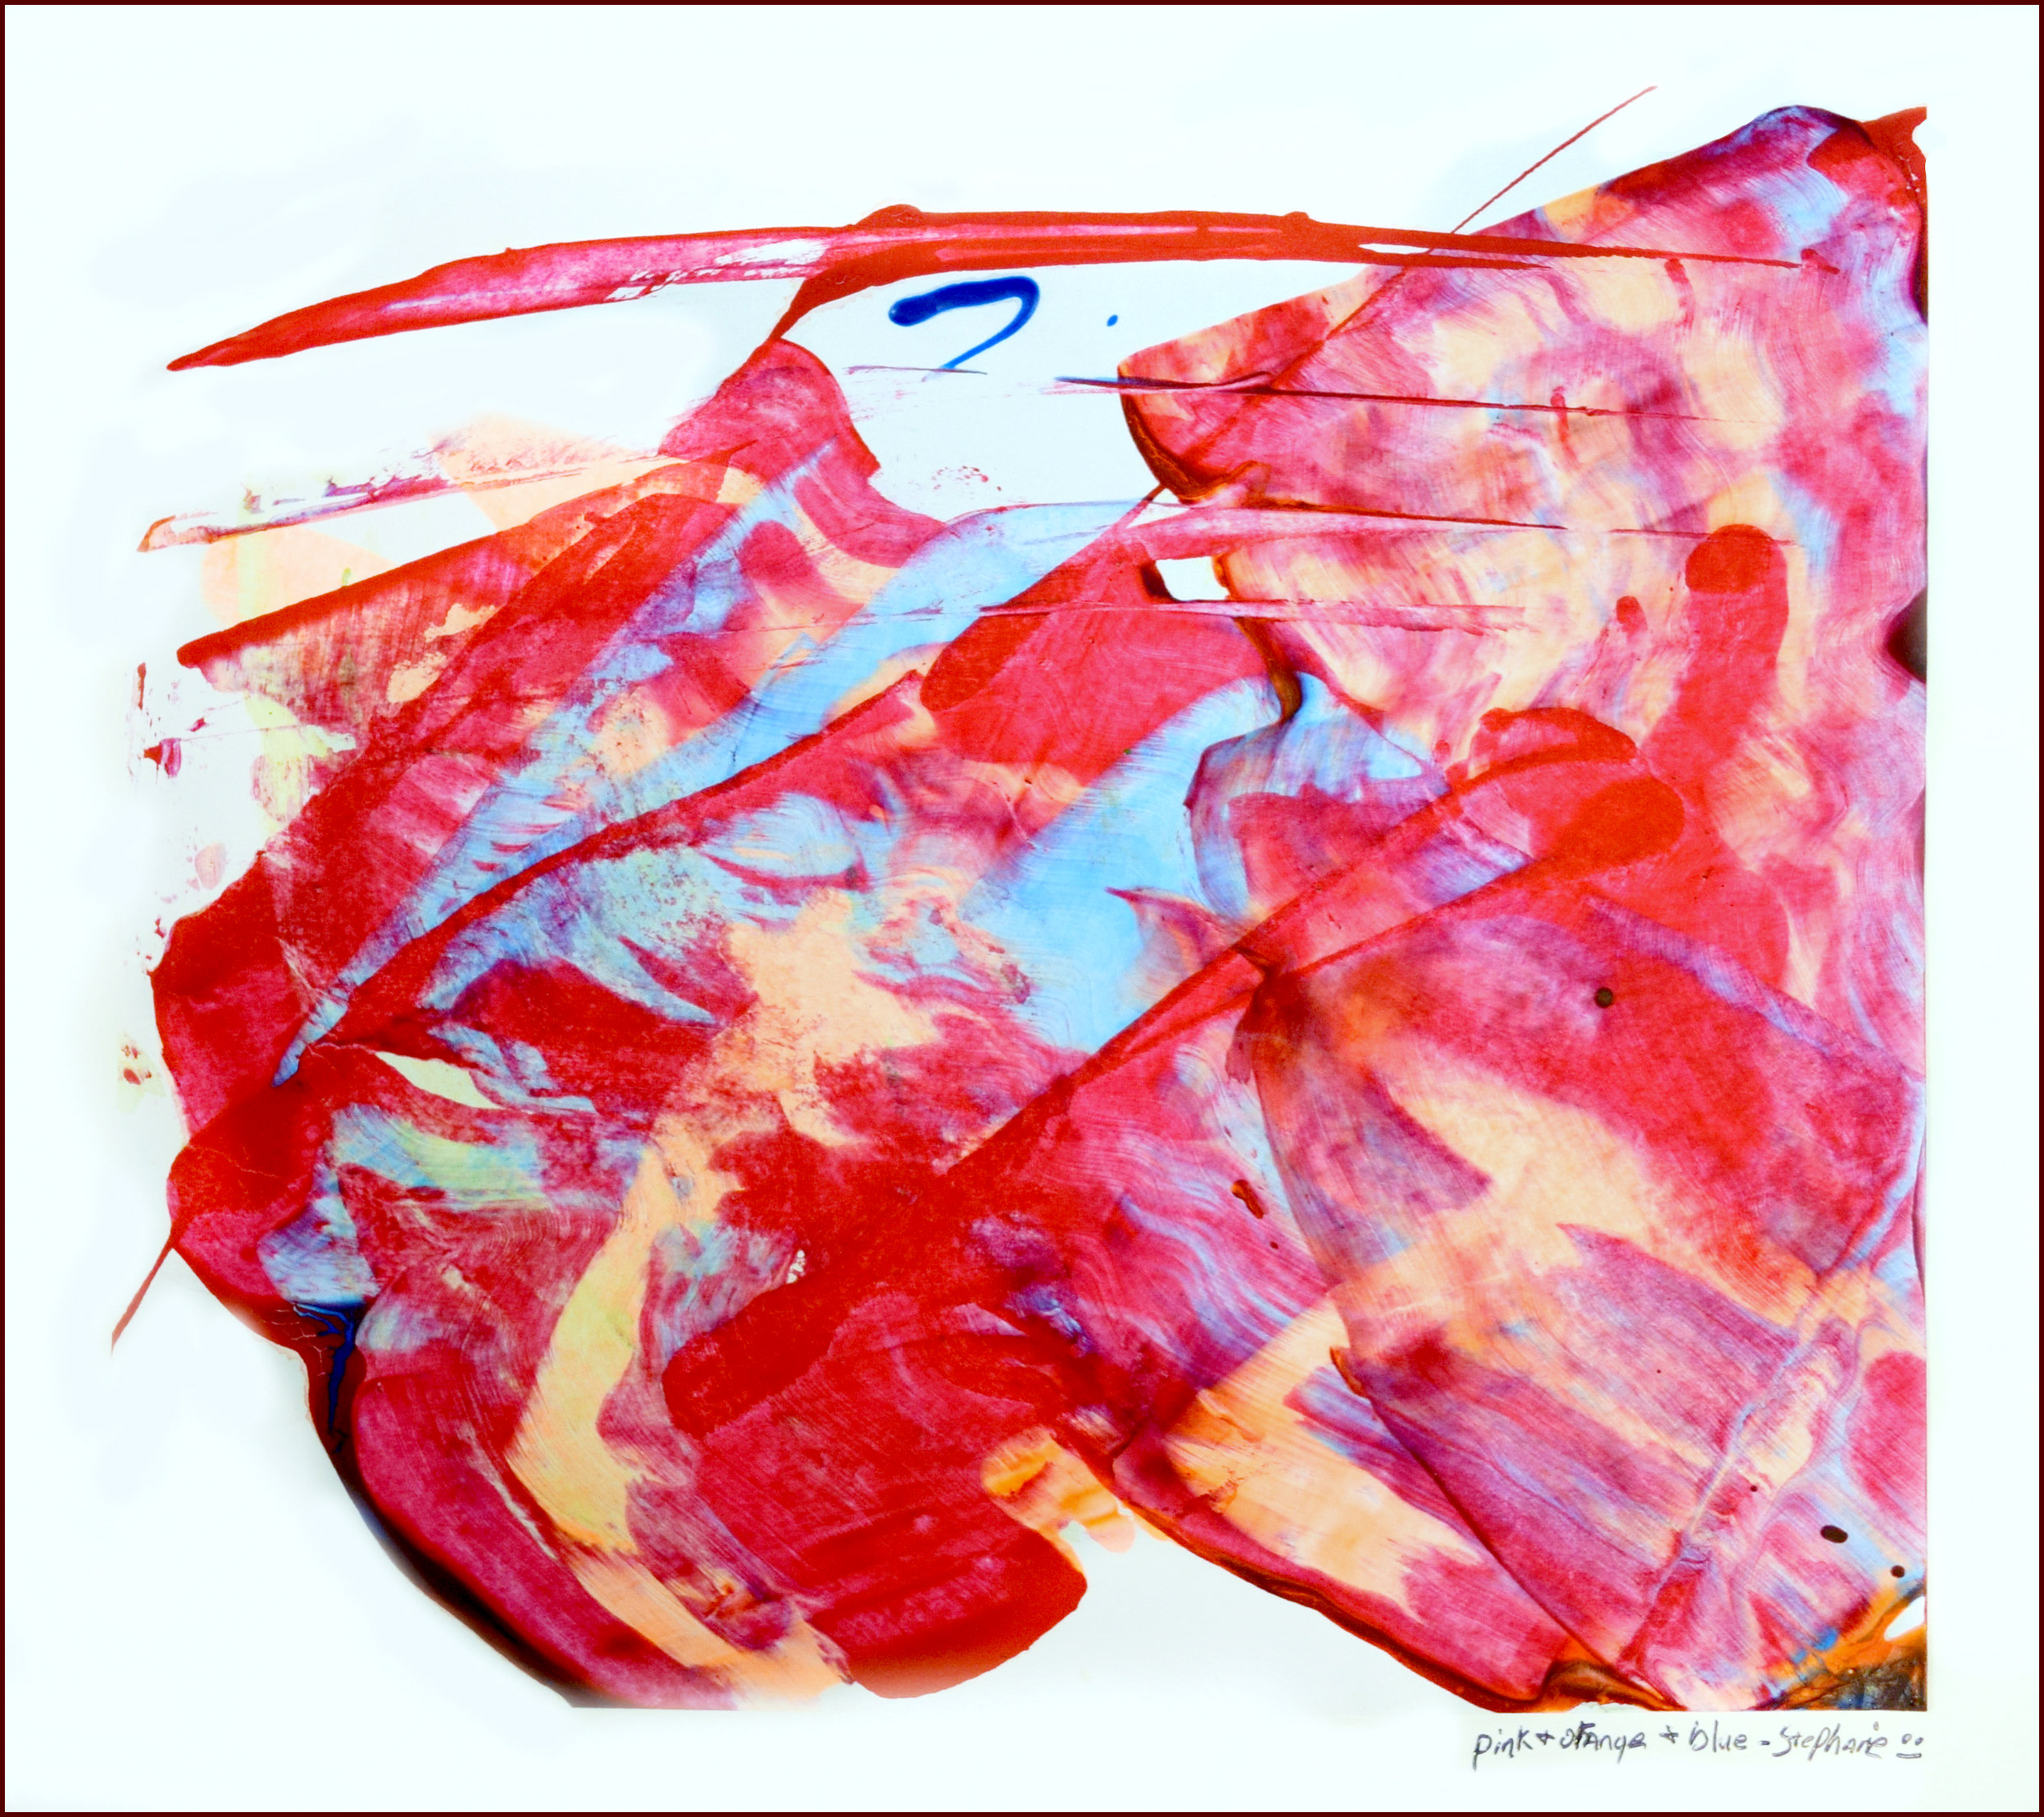 Pink and Orange $30 Stephanie Bedell 2016 Acrylic Scraping